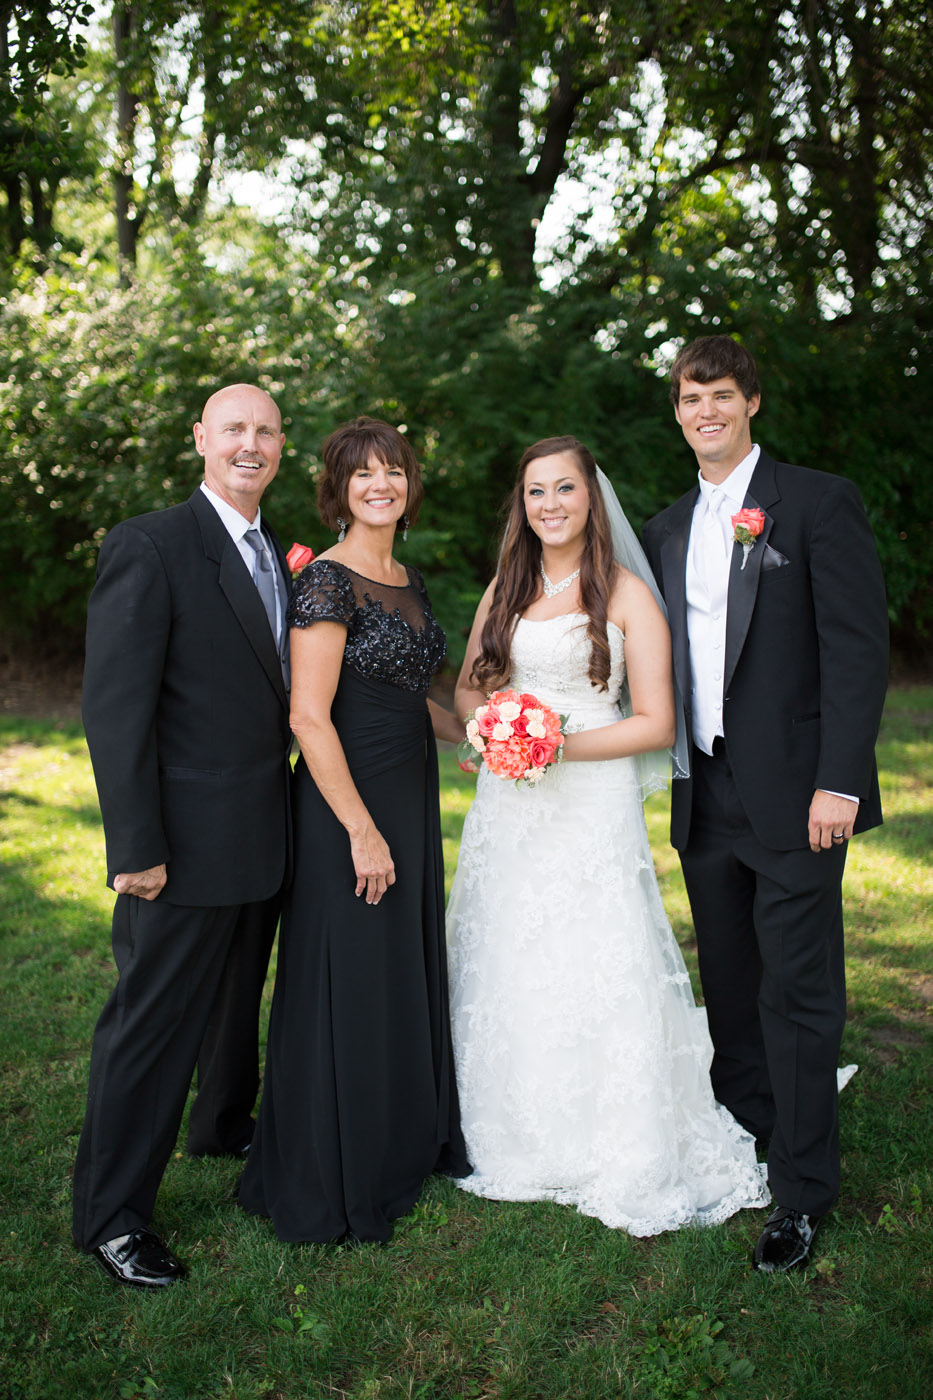 Sinclair Wedding 1 1366.jpg